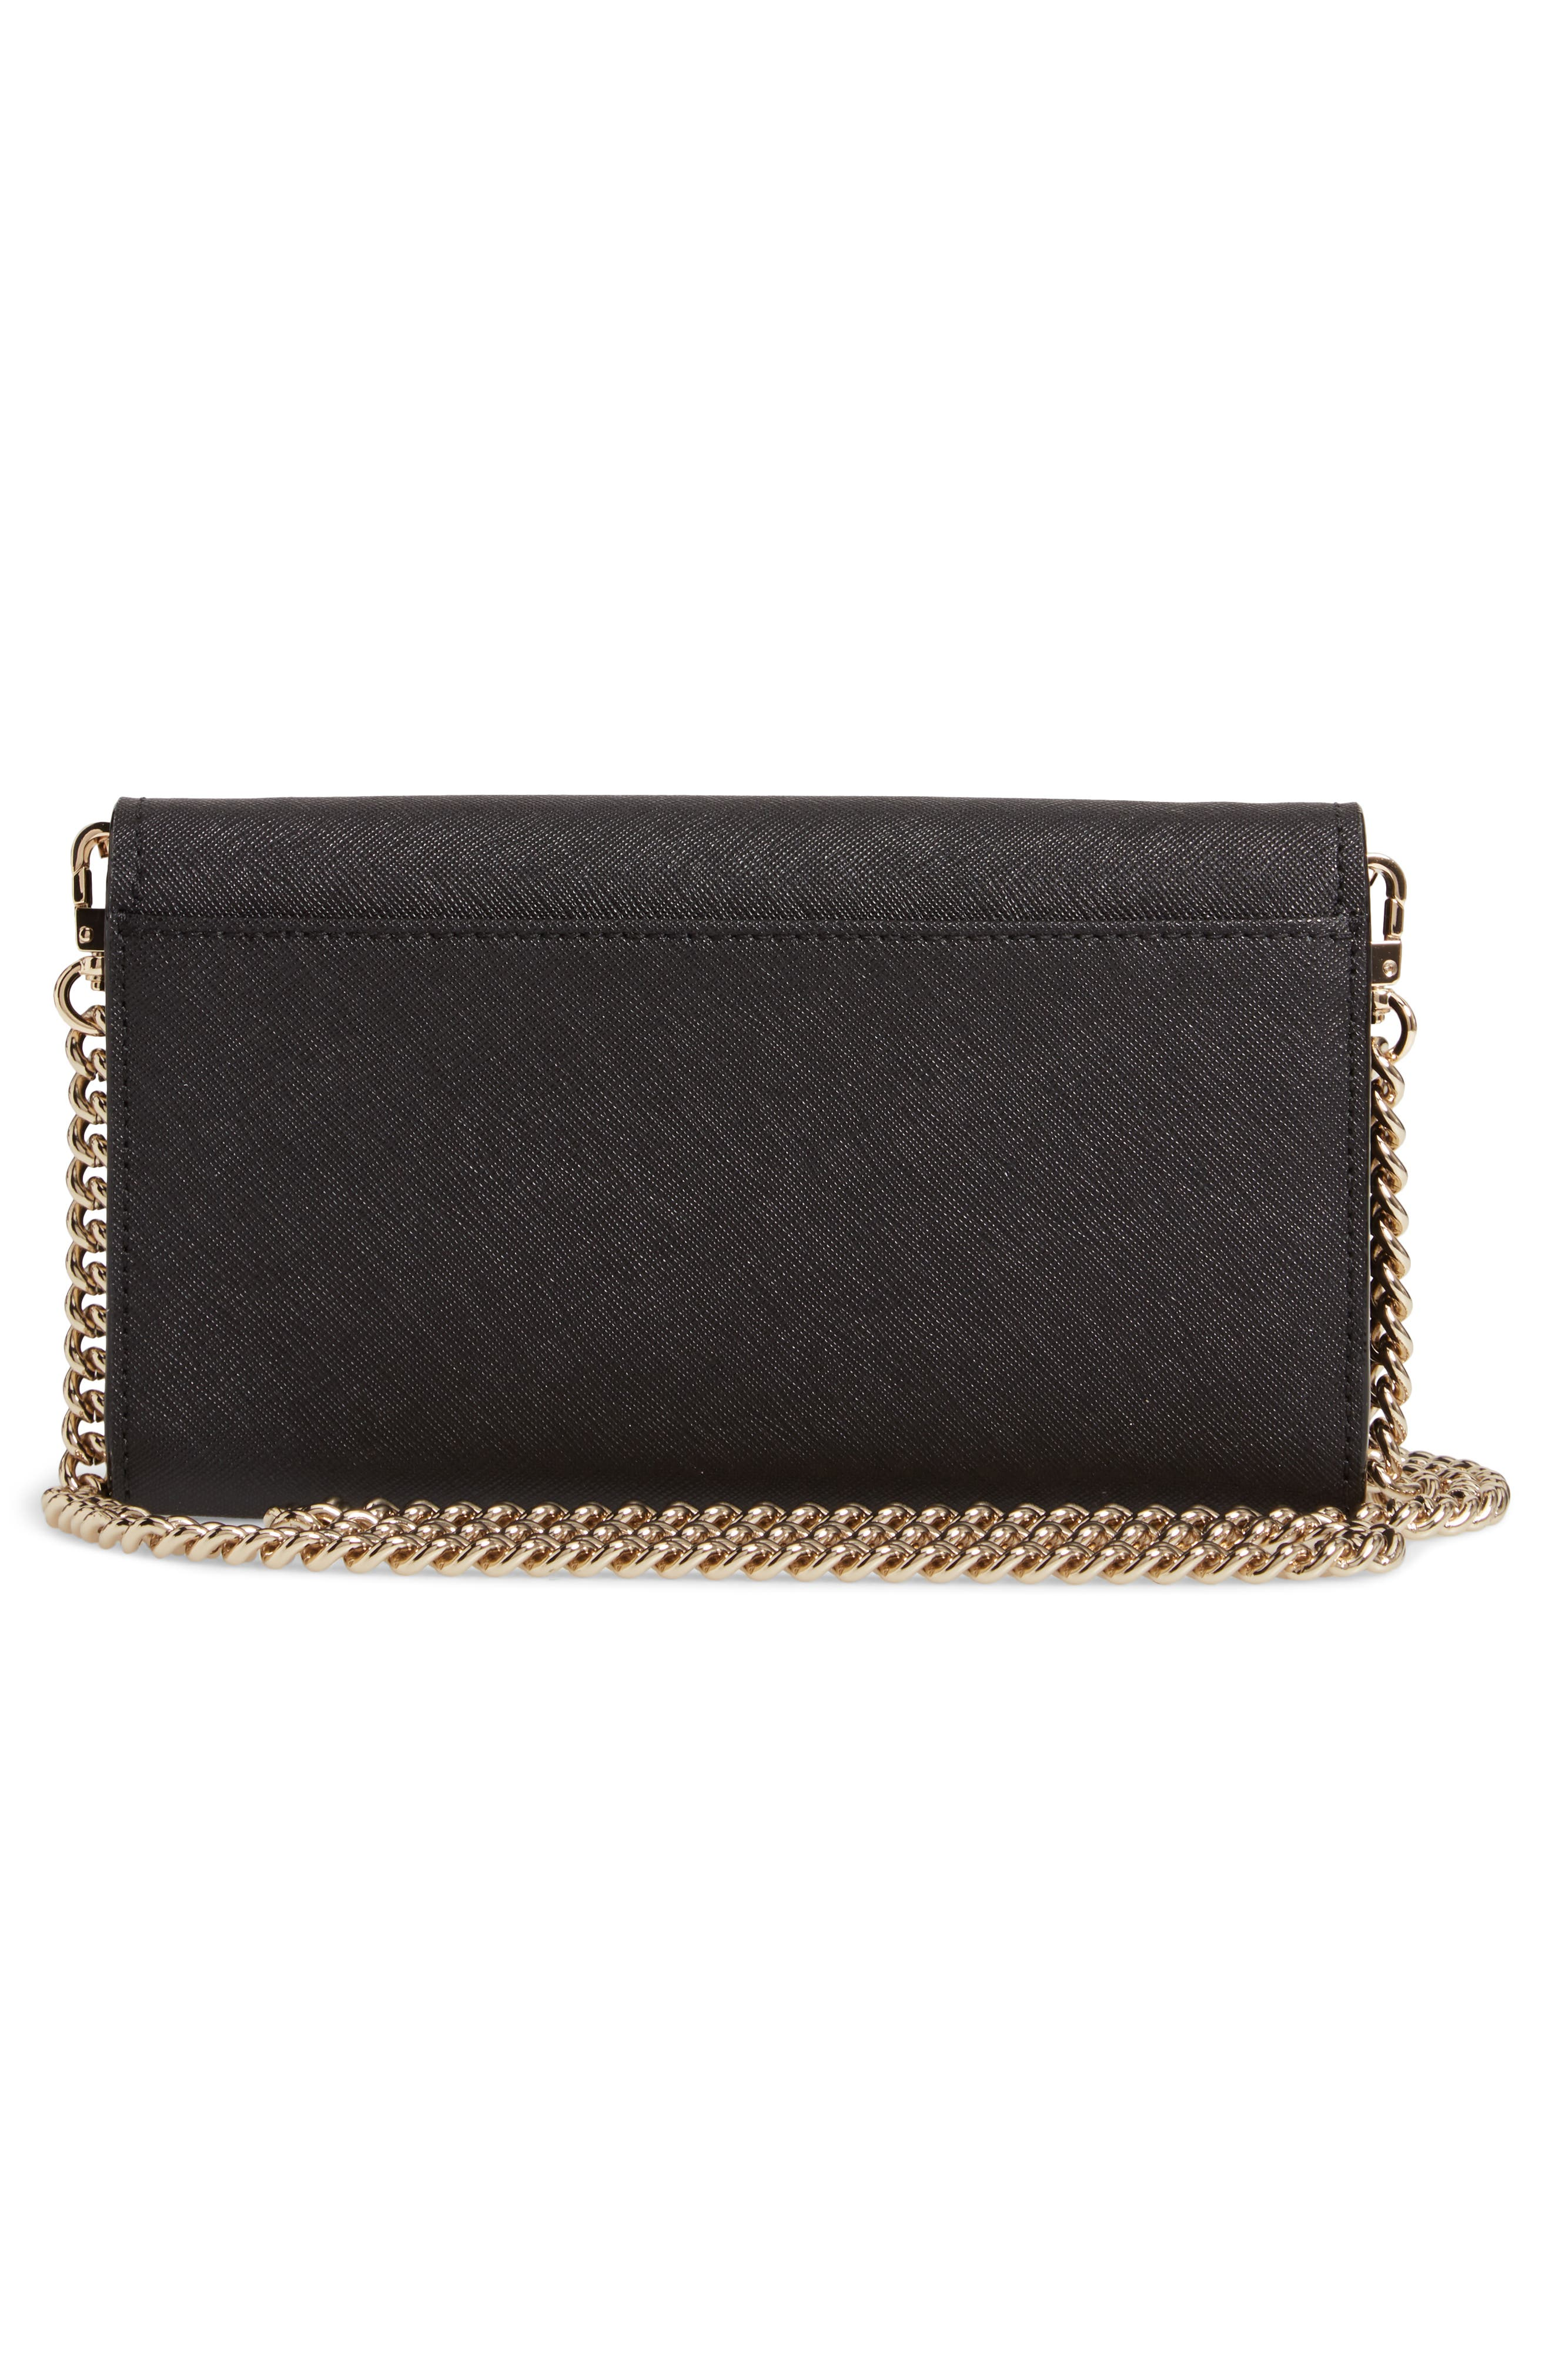 cameron street - franny leather wallet on a chain,                             Alternate thumbnail 3, color,                             001